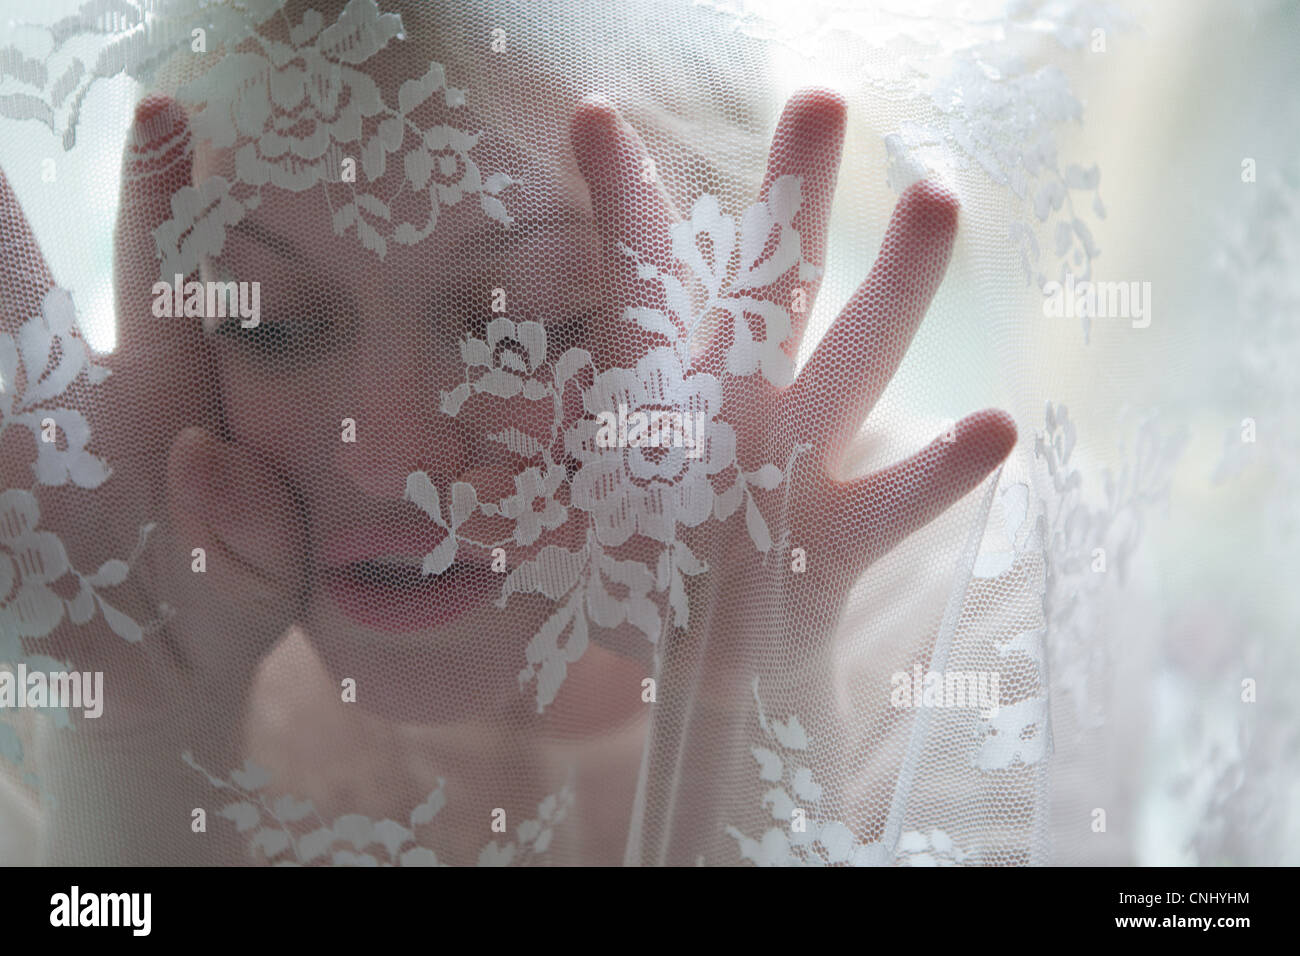 Young woman behind lace curtain - Stock Image